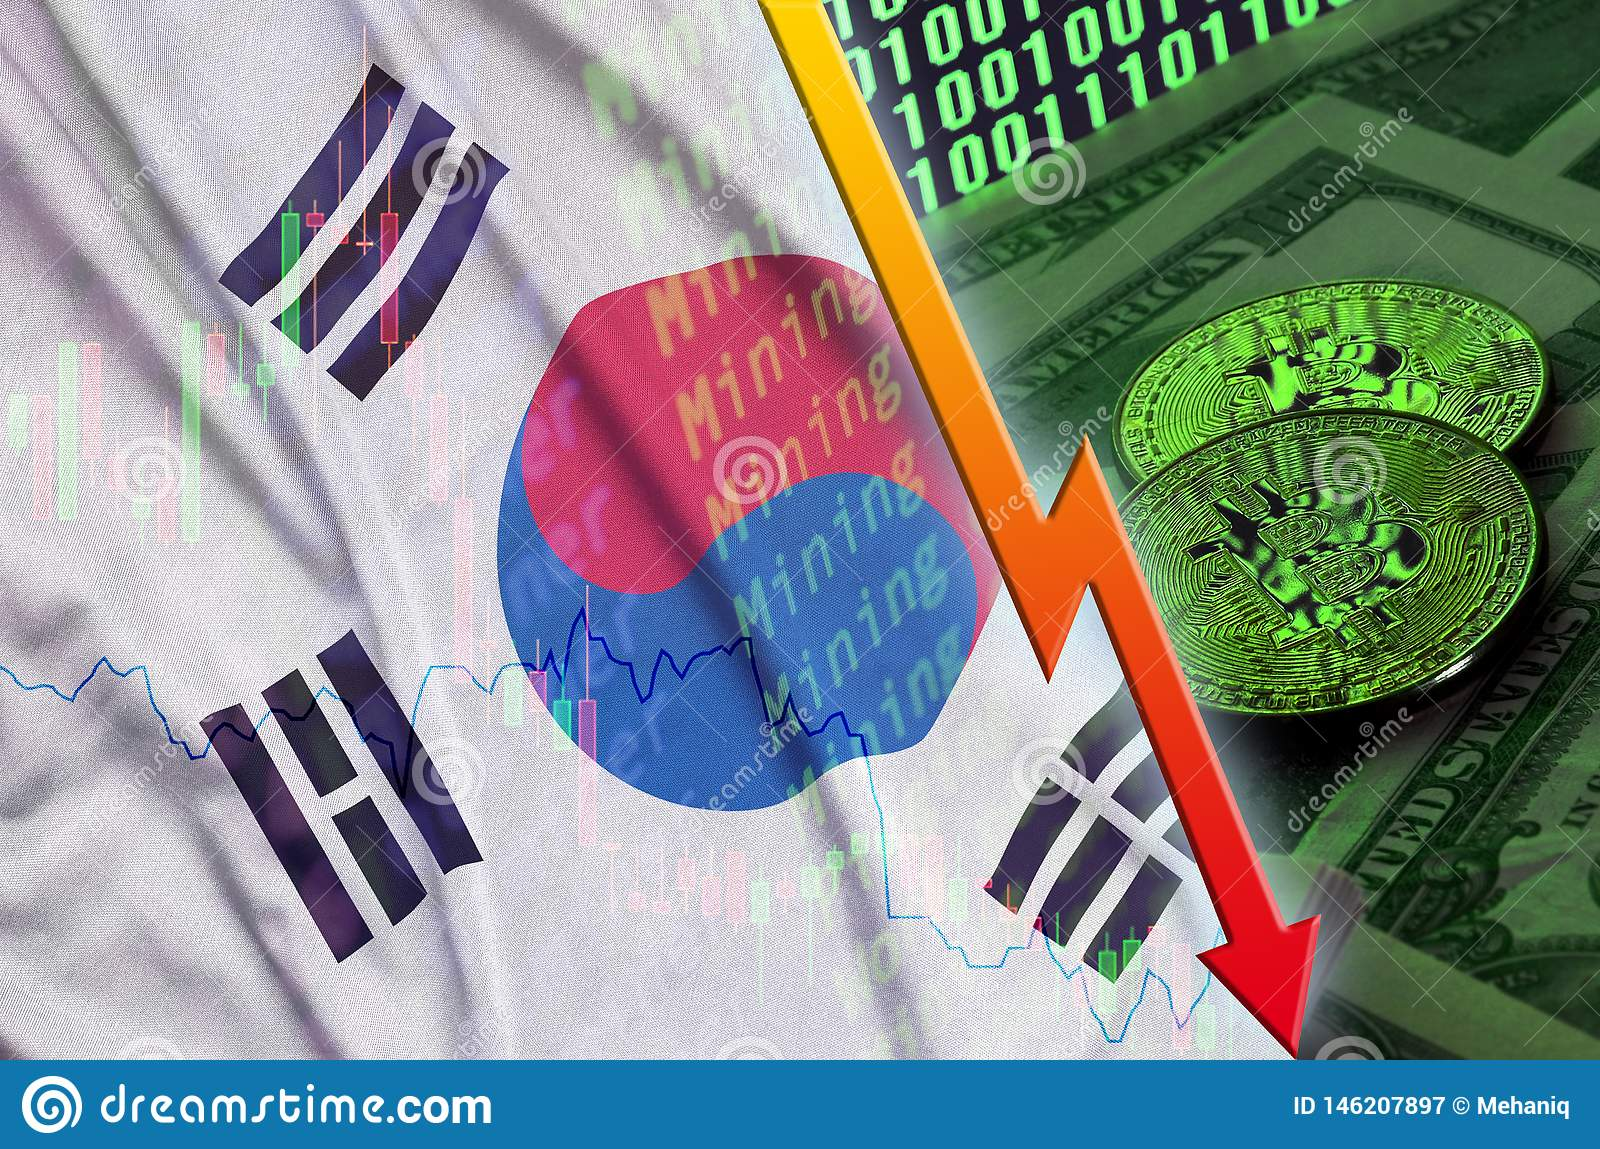 South Korea flag and cryptocurrency falling trend with two bitcoins on dollar bills and binary code display